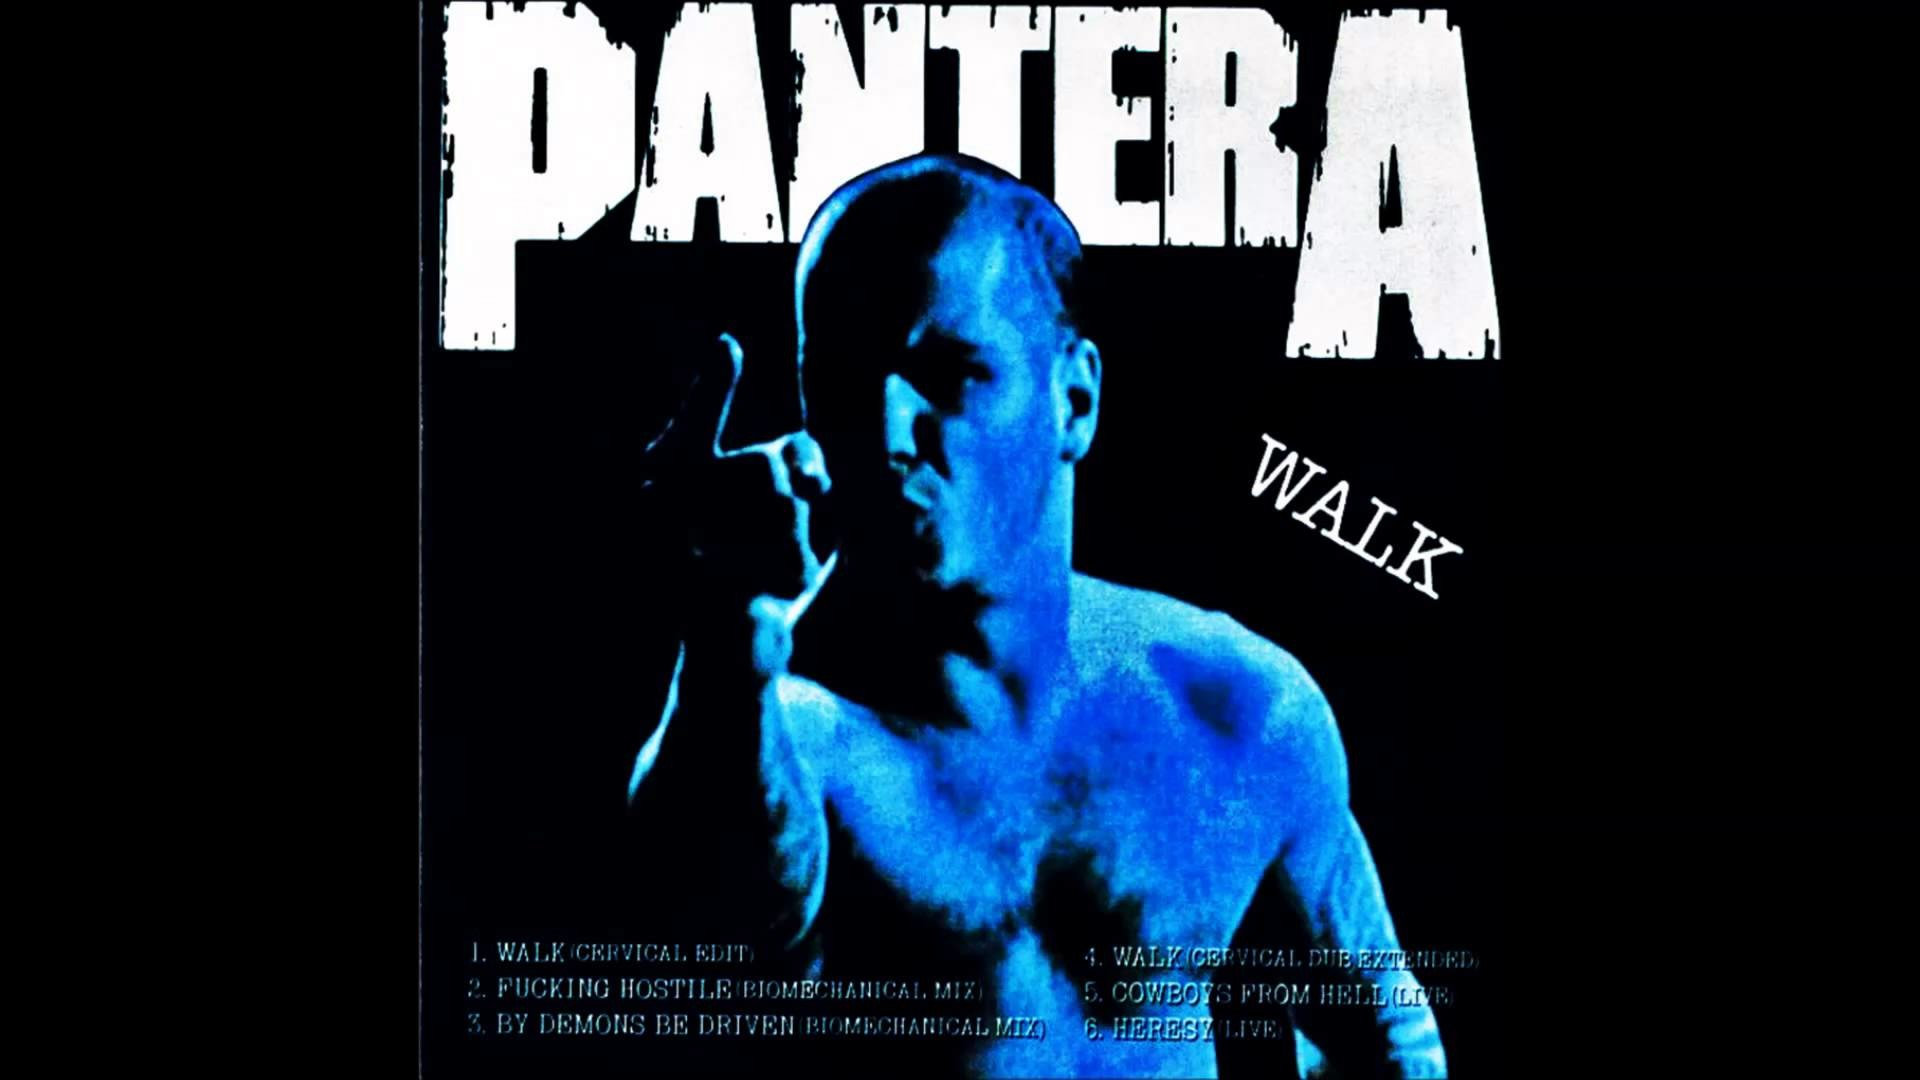 Pantera Wallpaper For Android 98 Pantera Wallpapers Wallpaper Cave Pantera Wallpapers And